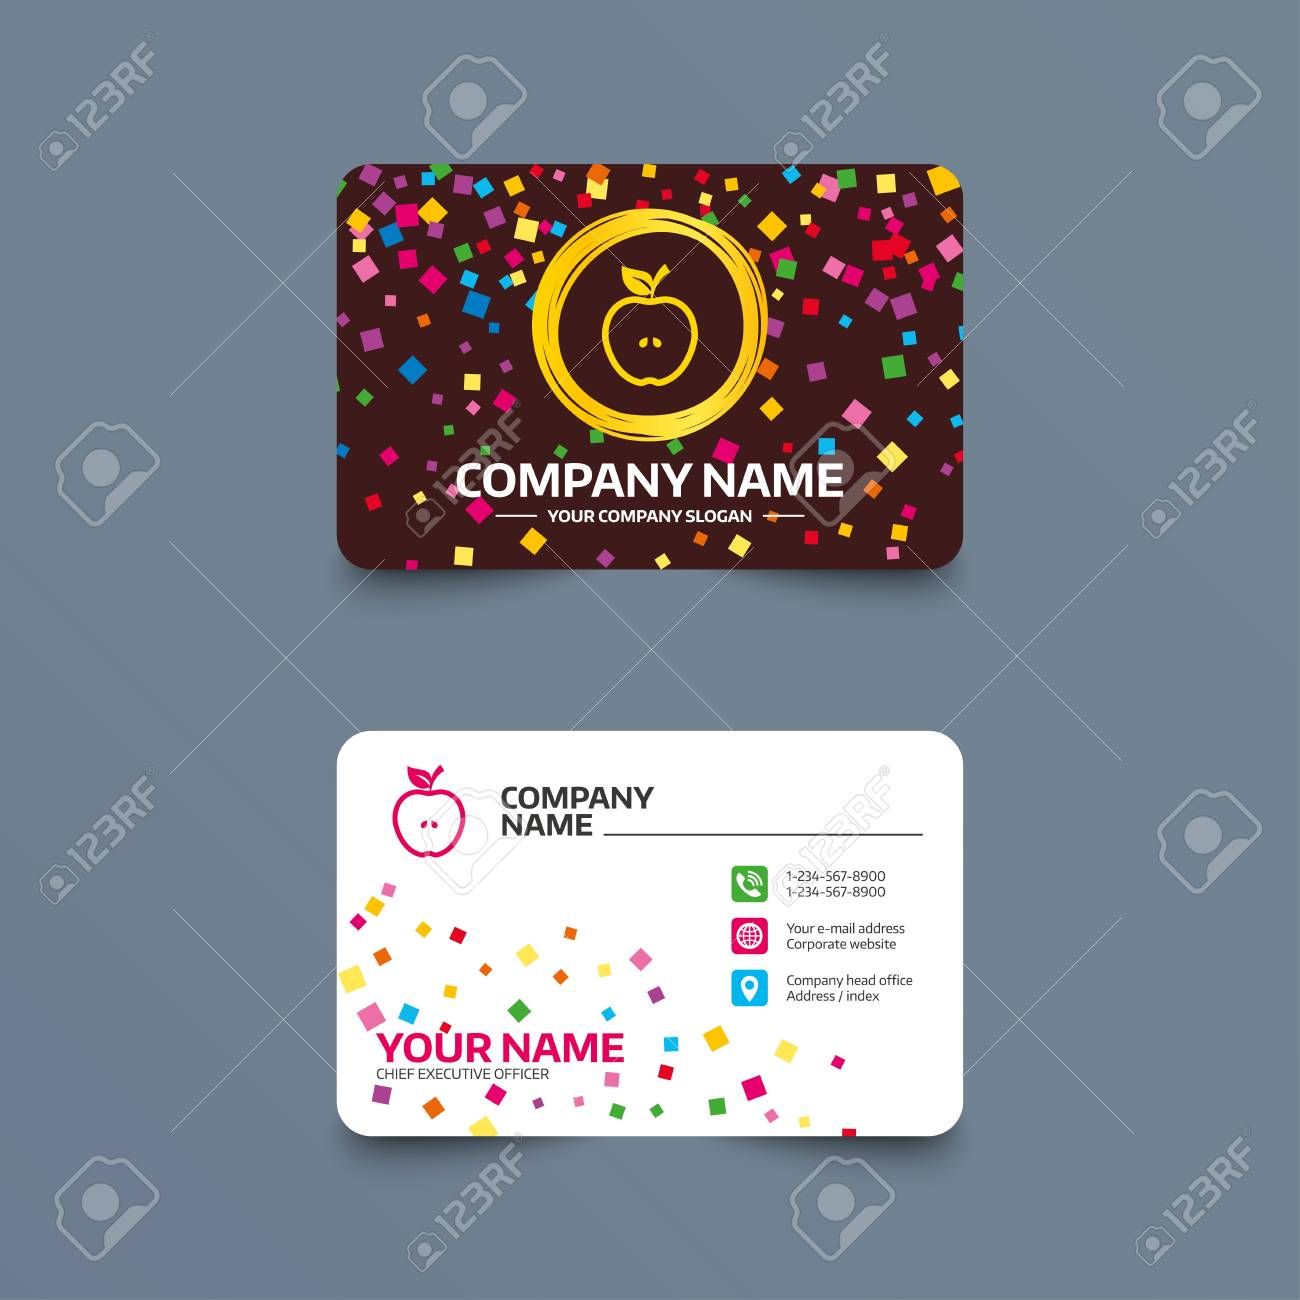 Business Card Template With Confetti Pieces Apple Sign Icon